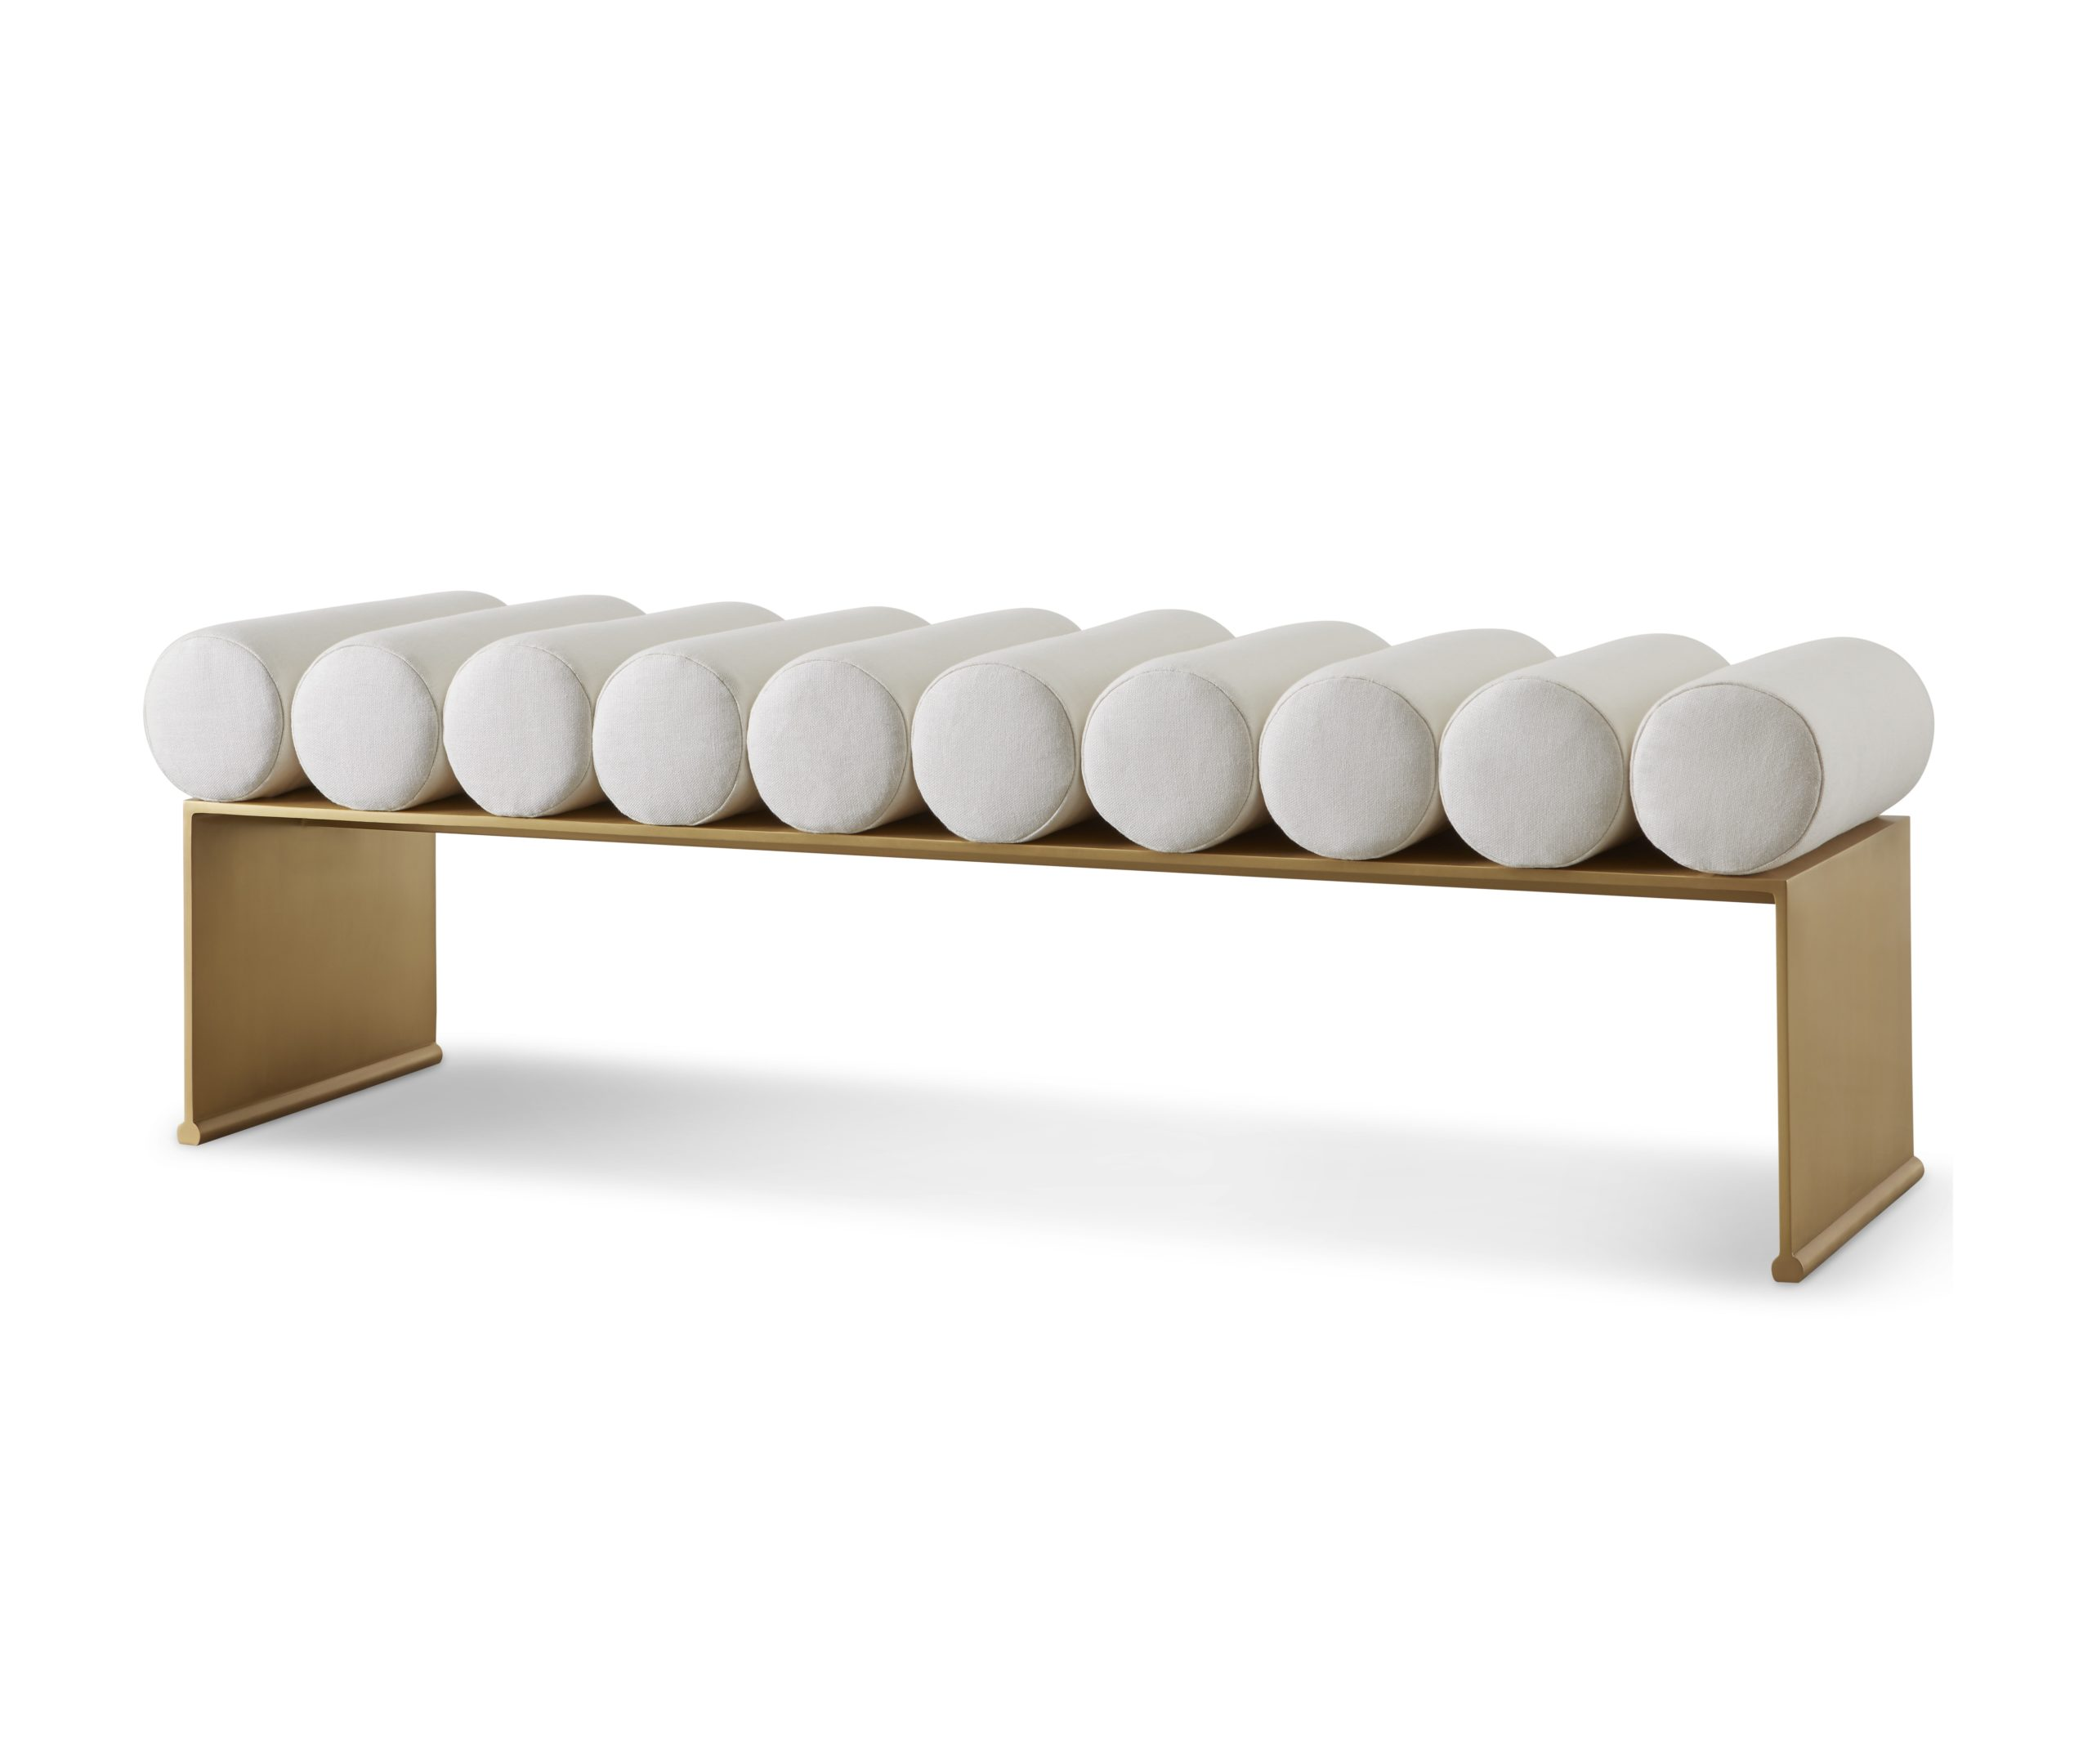 Baker_products_WNWN_runway_bench_BAA3216_FRONT_3QRT-scaled-1